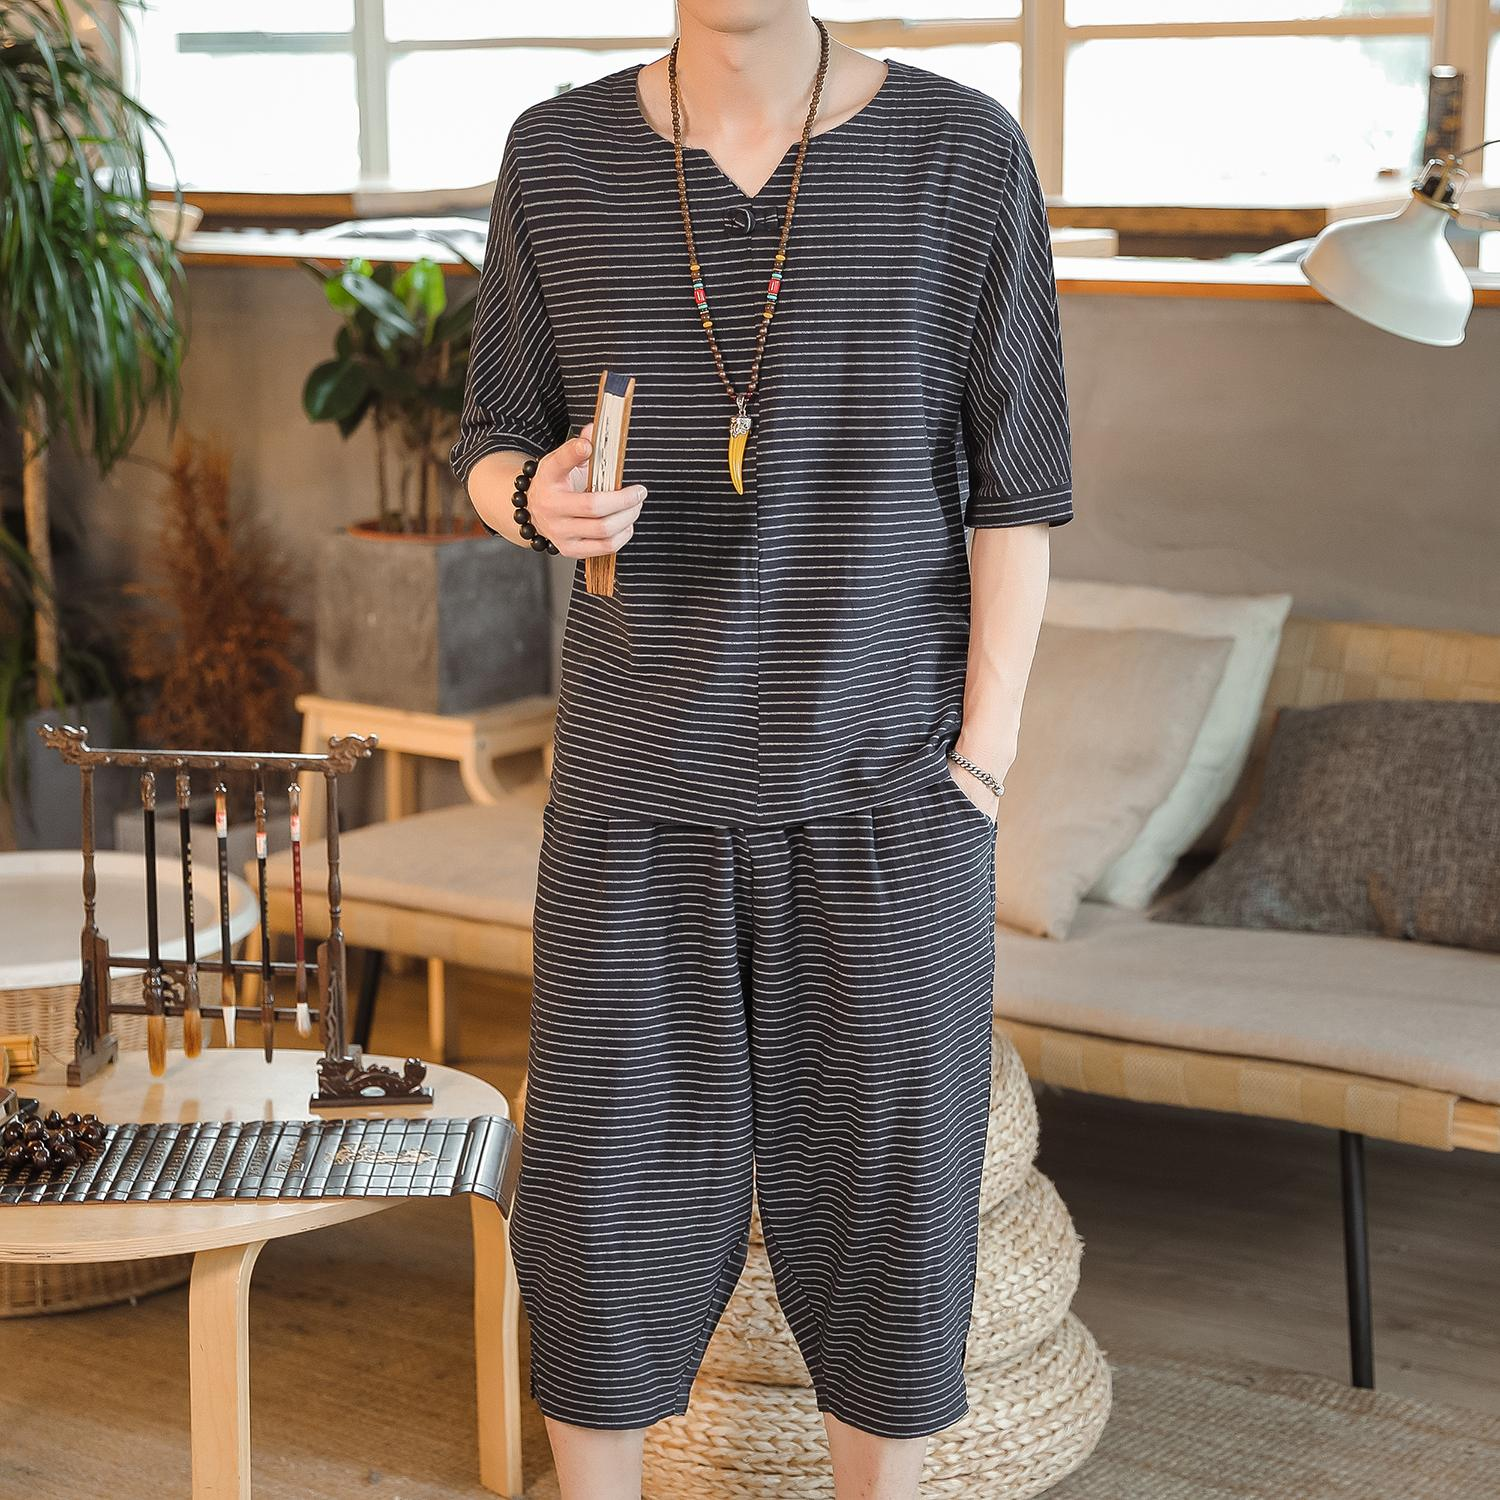 Loldeal Summer Cotton Linen Chinese Striped Short Sleeve Suit Casual Two-piece 5XL Track Men